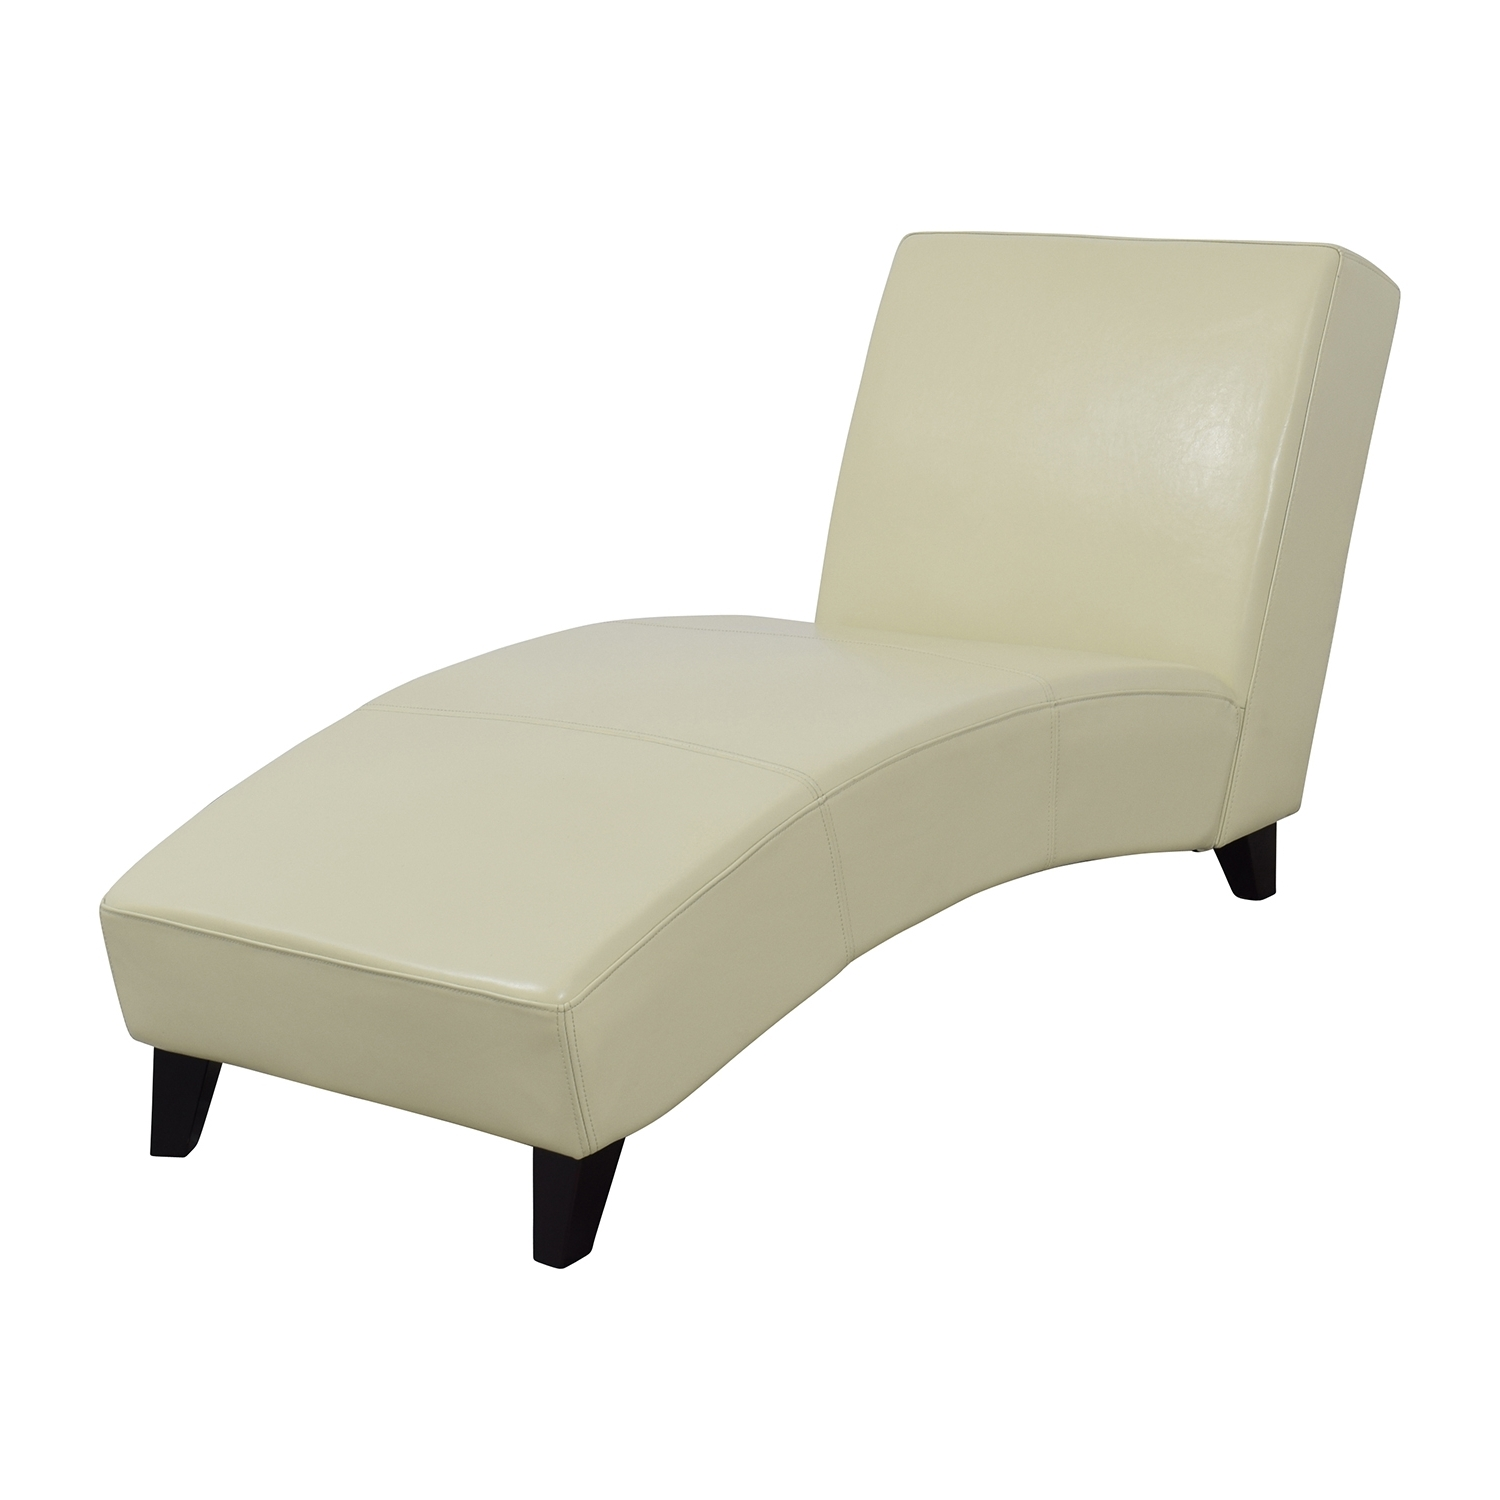 [%90% Off – Wayfair Wayfair White Leather Chaise / Sofas With Most Recently Released White Leather Chaises|White Leather Chaises In Most Recent 90% Off – Wayfair Wayfair White Leather Chaise / Sofas|Best And Newest White Leather Chaises Pertaining To 90% Off – Wayfair Wayfair White Leather Chaise / Sofas|Well Liked 90% Off – Wayfair Wayfair White Leather Chaise / Sofas Pertaining To White Leather Chaises%] (View 9 of 15)